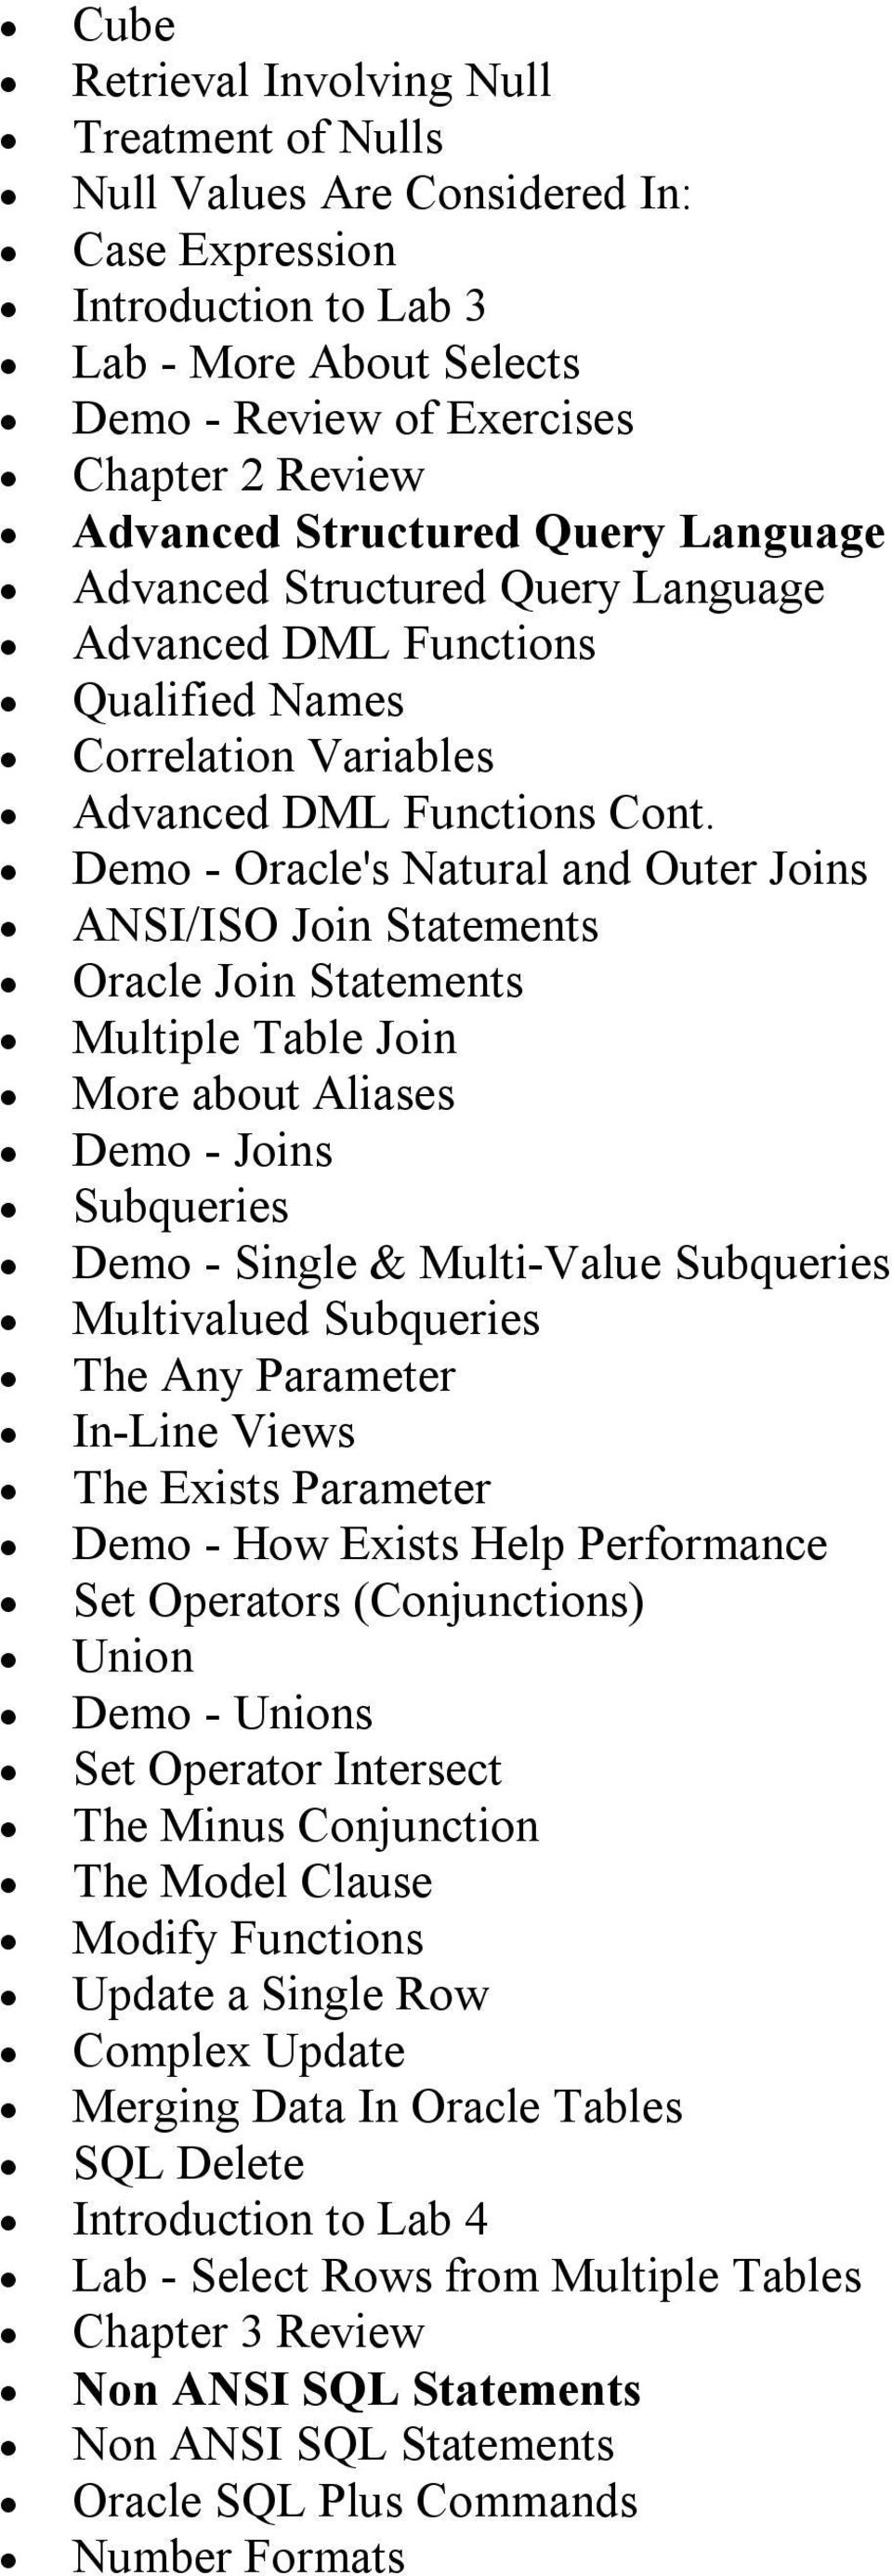 Demo Oracle's Natural and Outer Joins ANSI/ISO Join Statements Oracle Join Statements Multiple Table Join More about Aliases Demo Joins Subqueries Demo Single & Multi Value Subqueries Multivalued